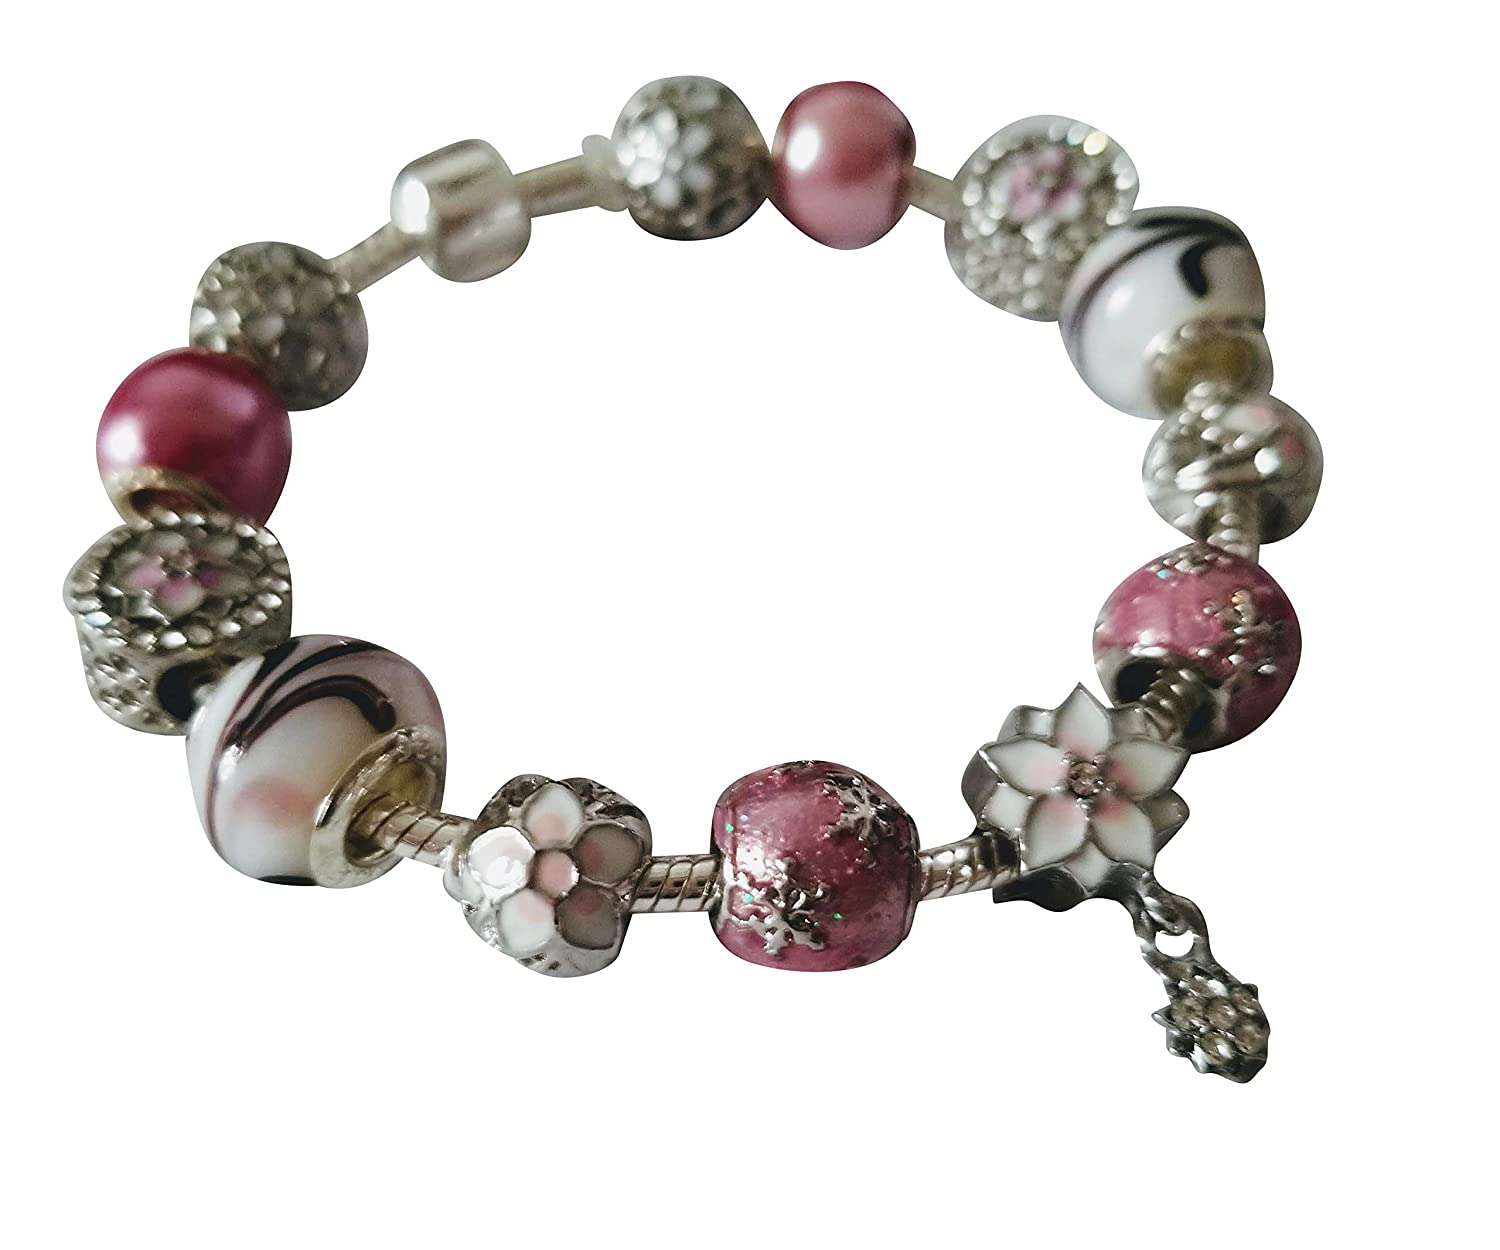 Cheris Creative Creations Pink with Silver Tone Charm Bracelet Womens